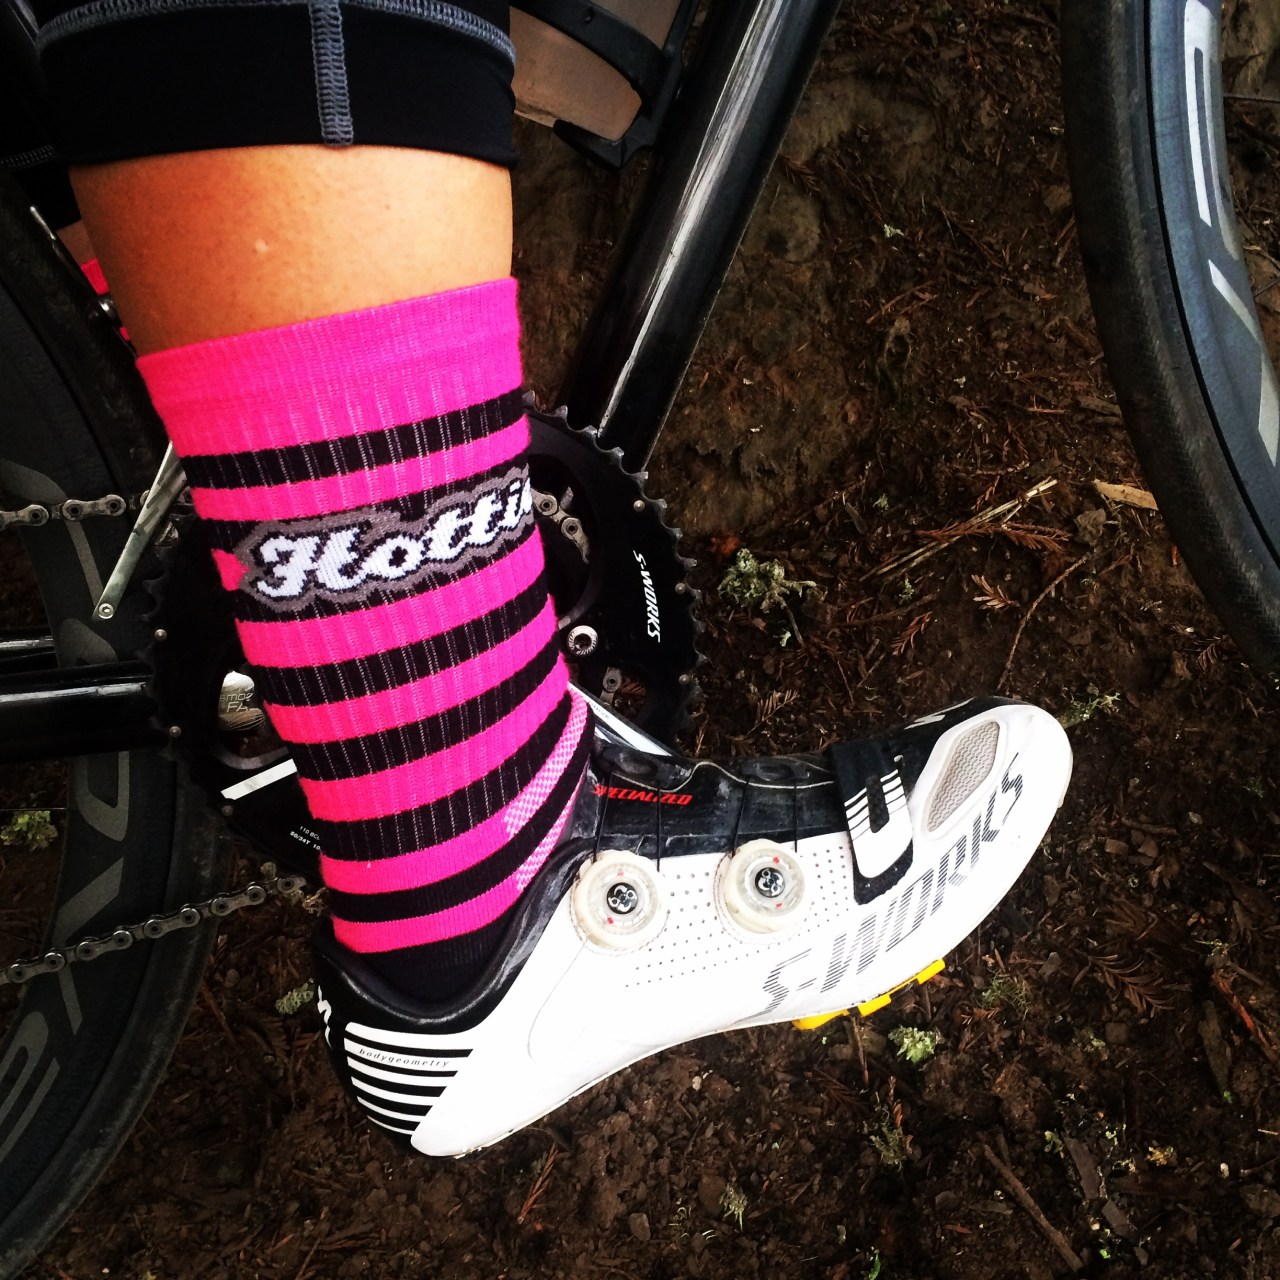 Stage 3 (AM stage) sock selection. Hottie sock.